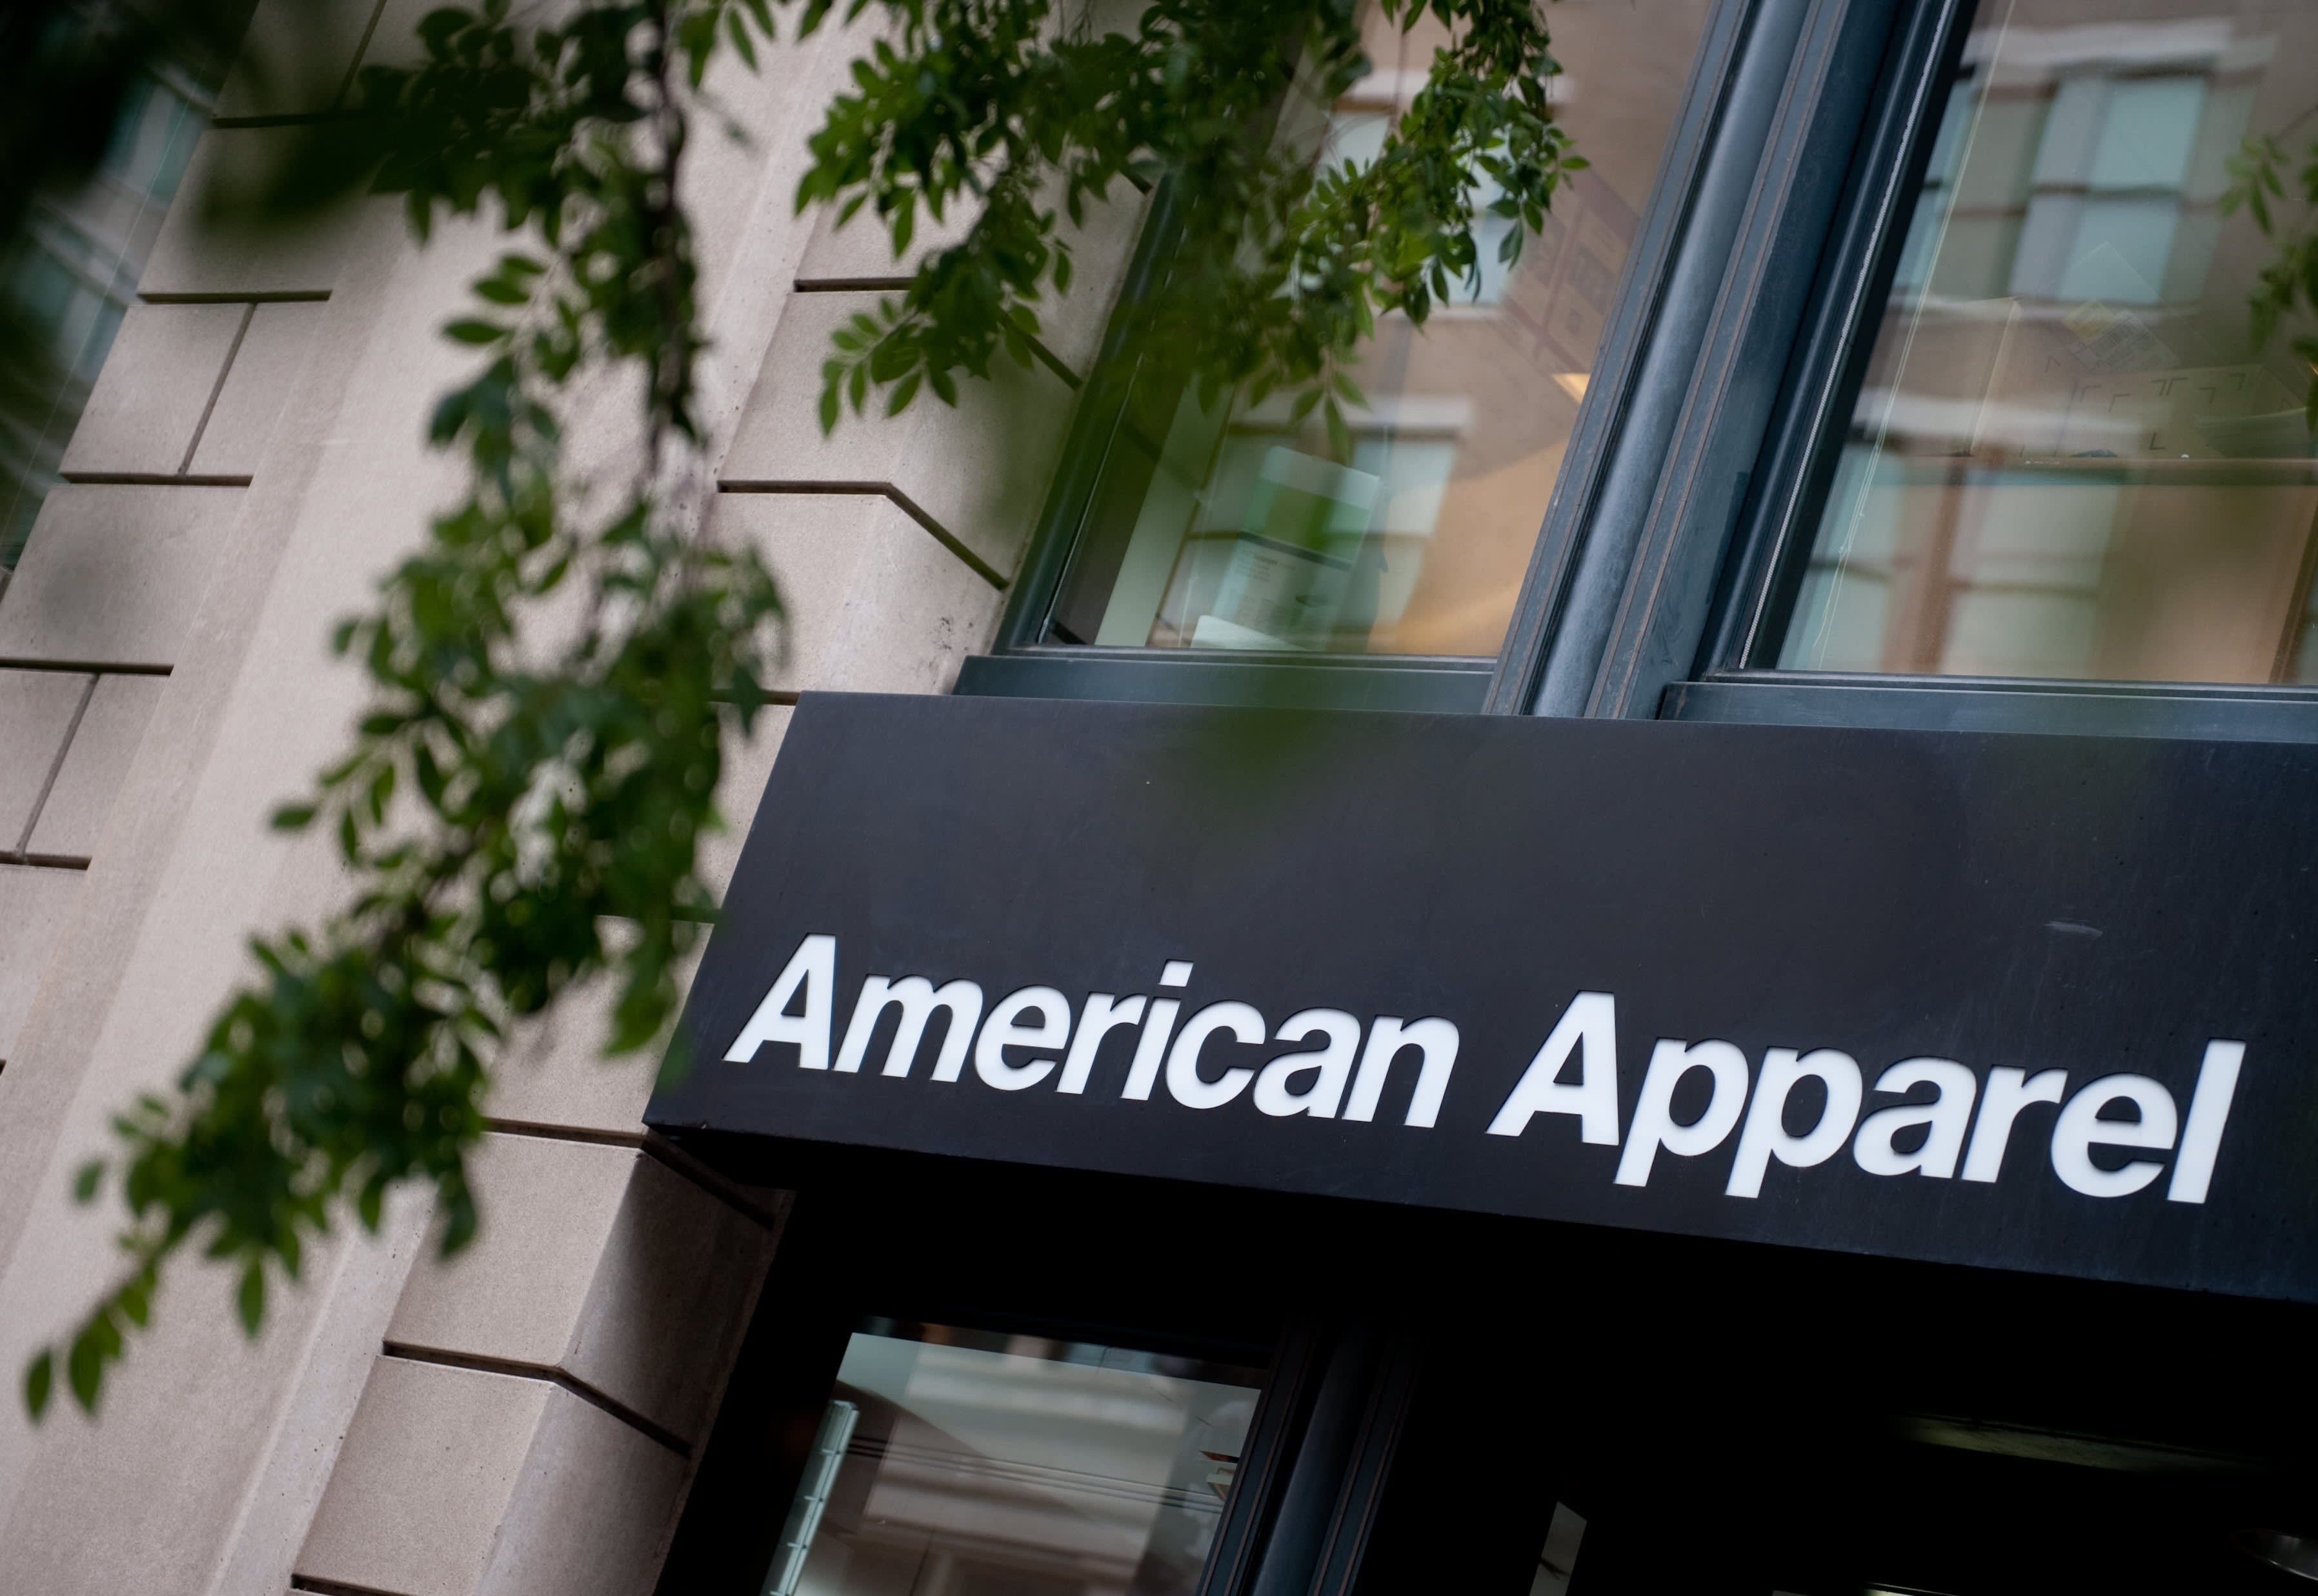 How American Apparel came back from the brink of death